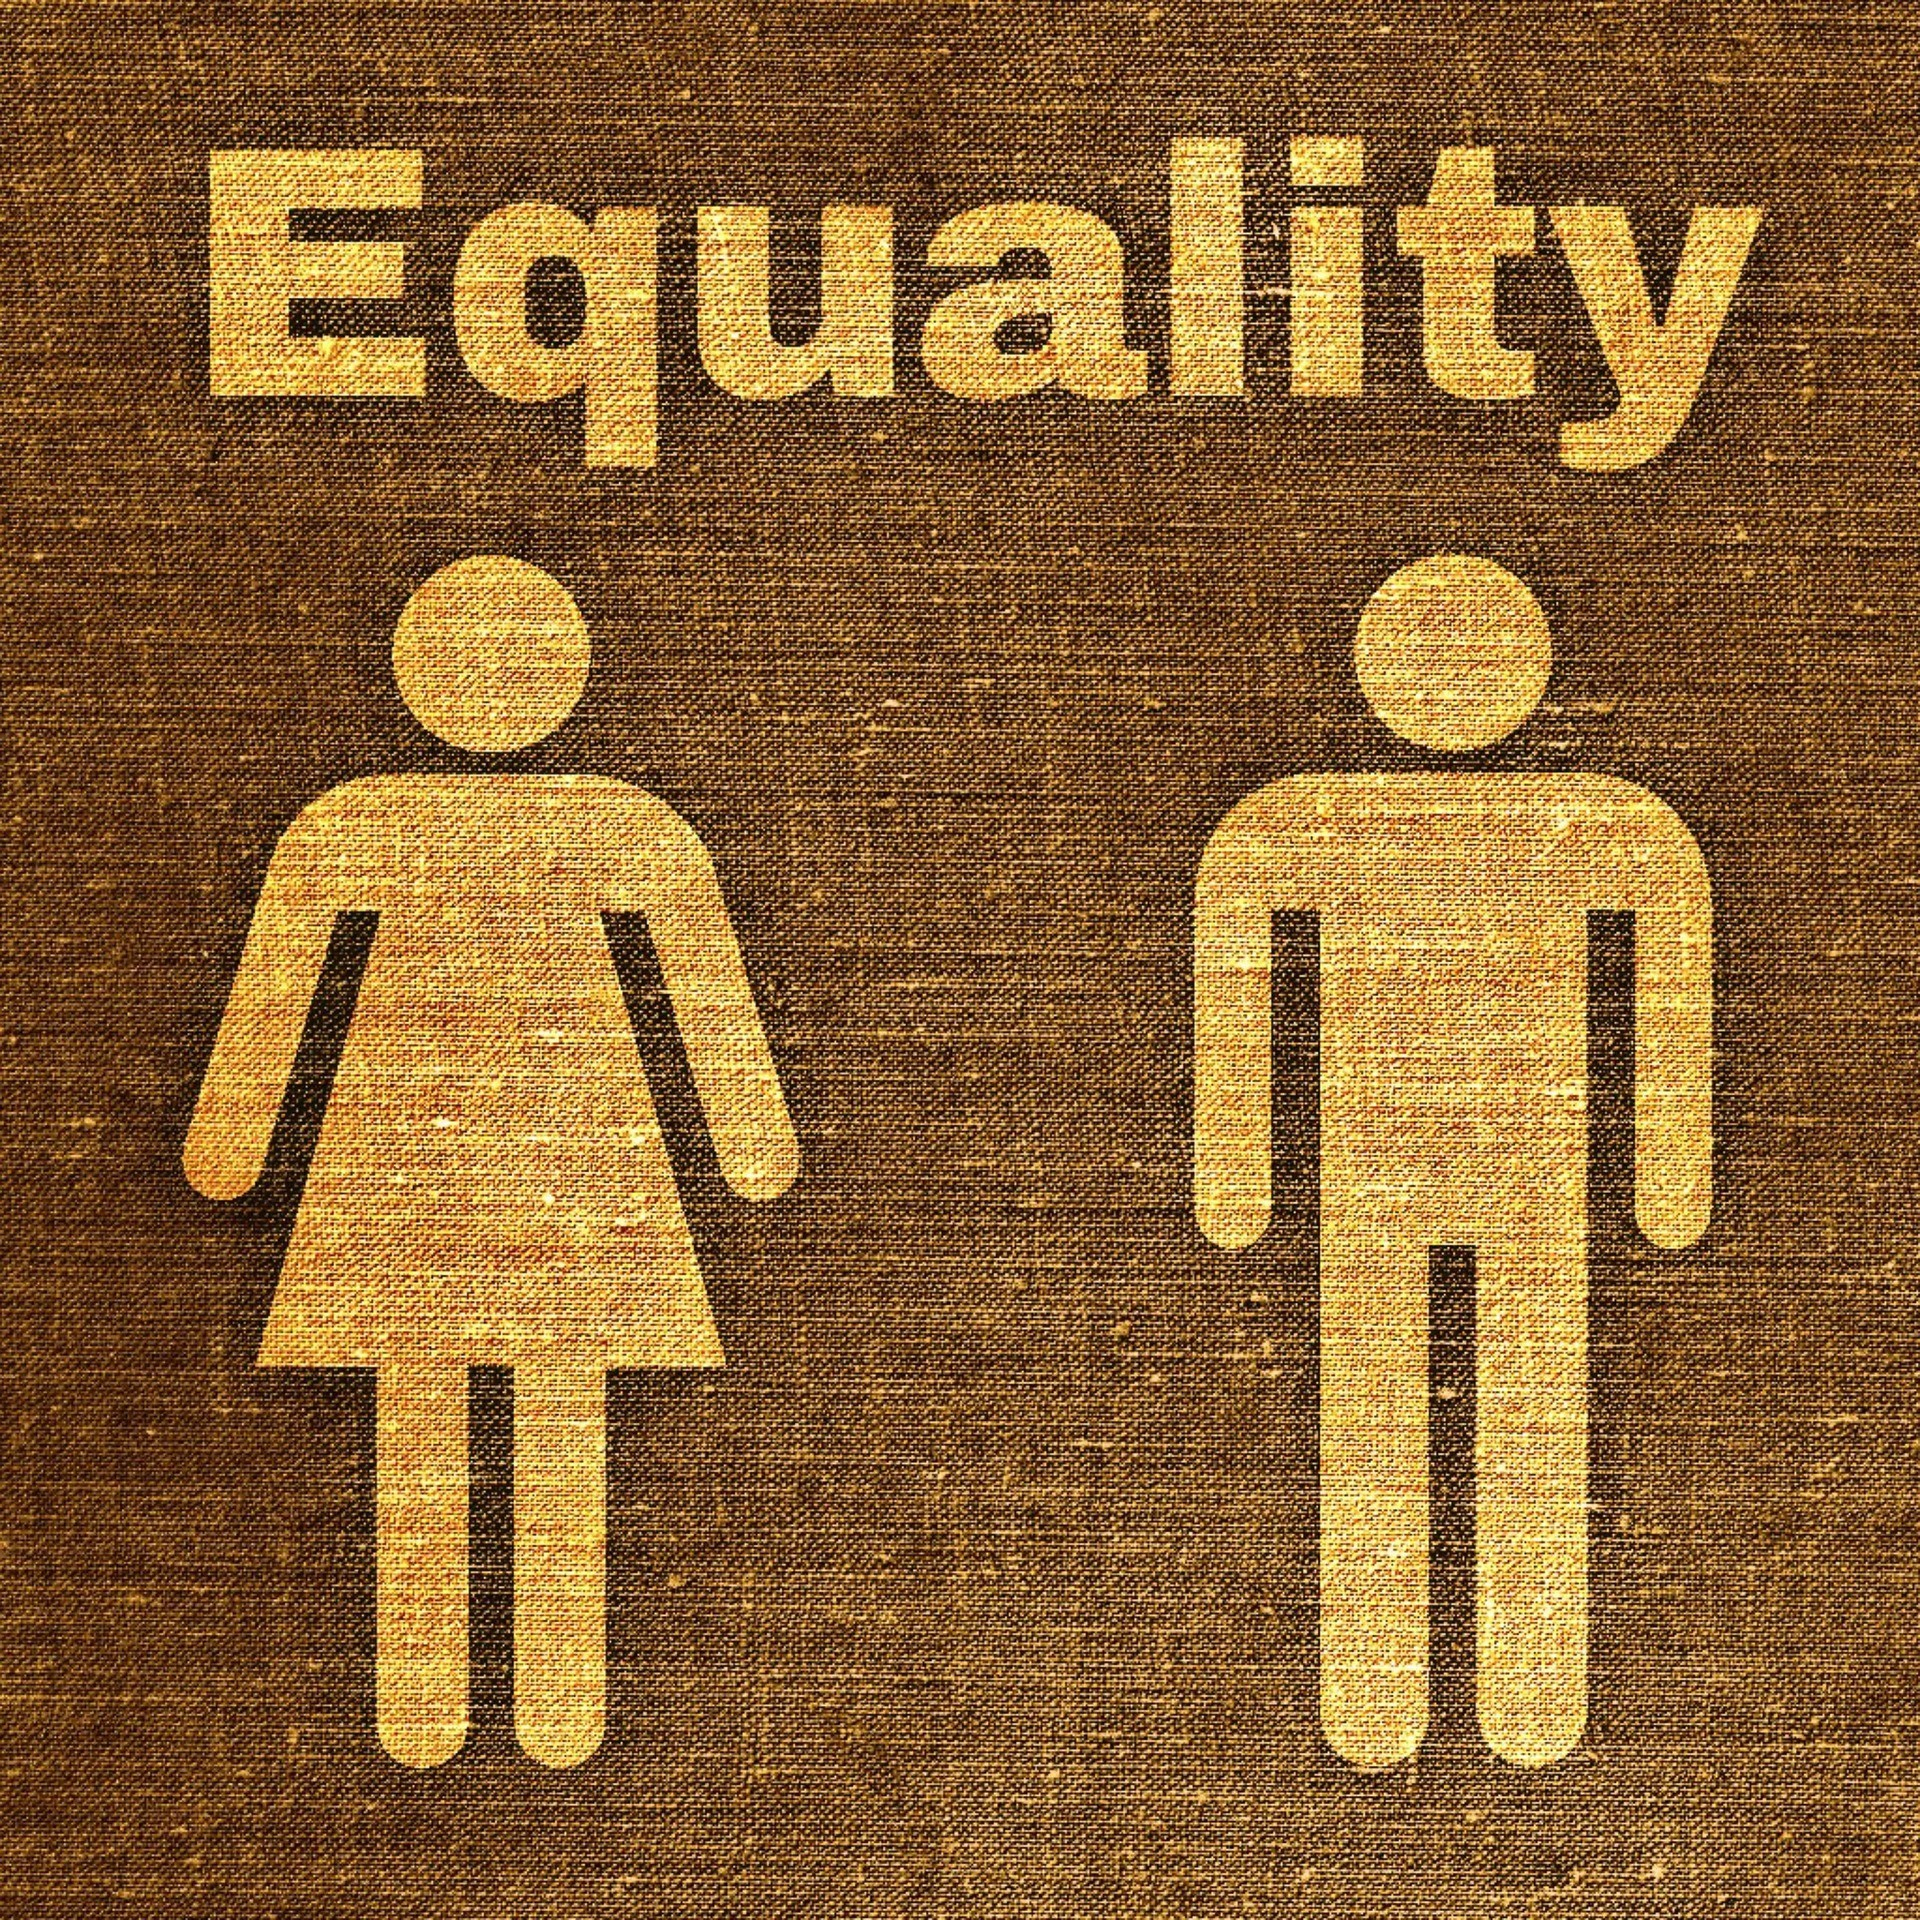 Equality man-1131008_1920 Image by Alexas_Fotos from Pixabay